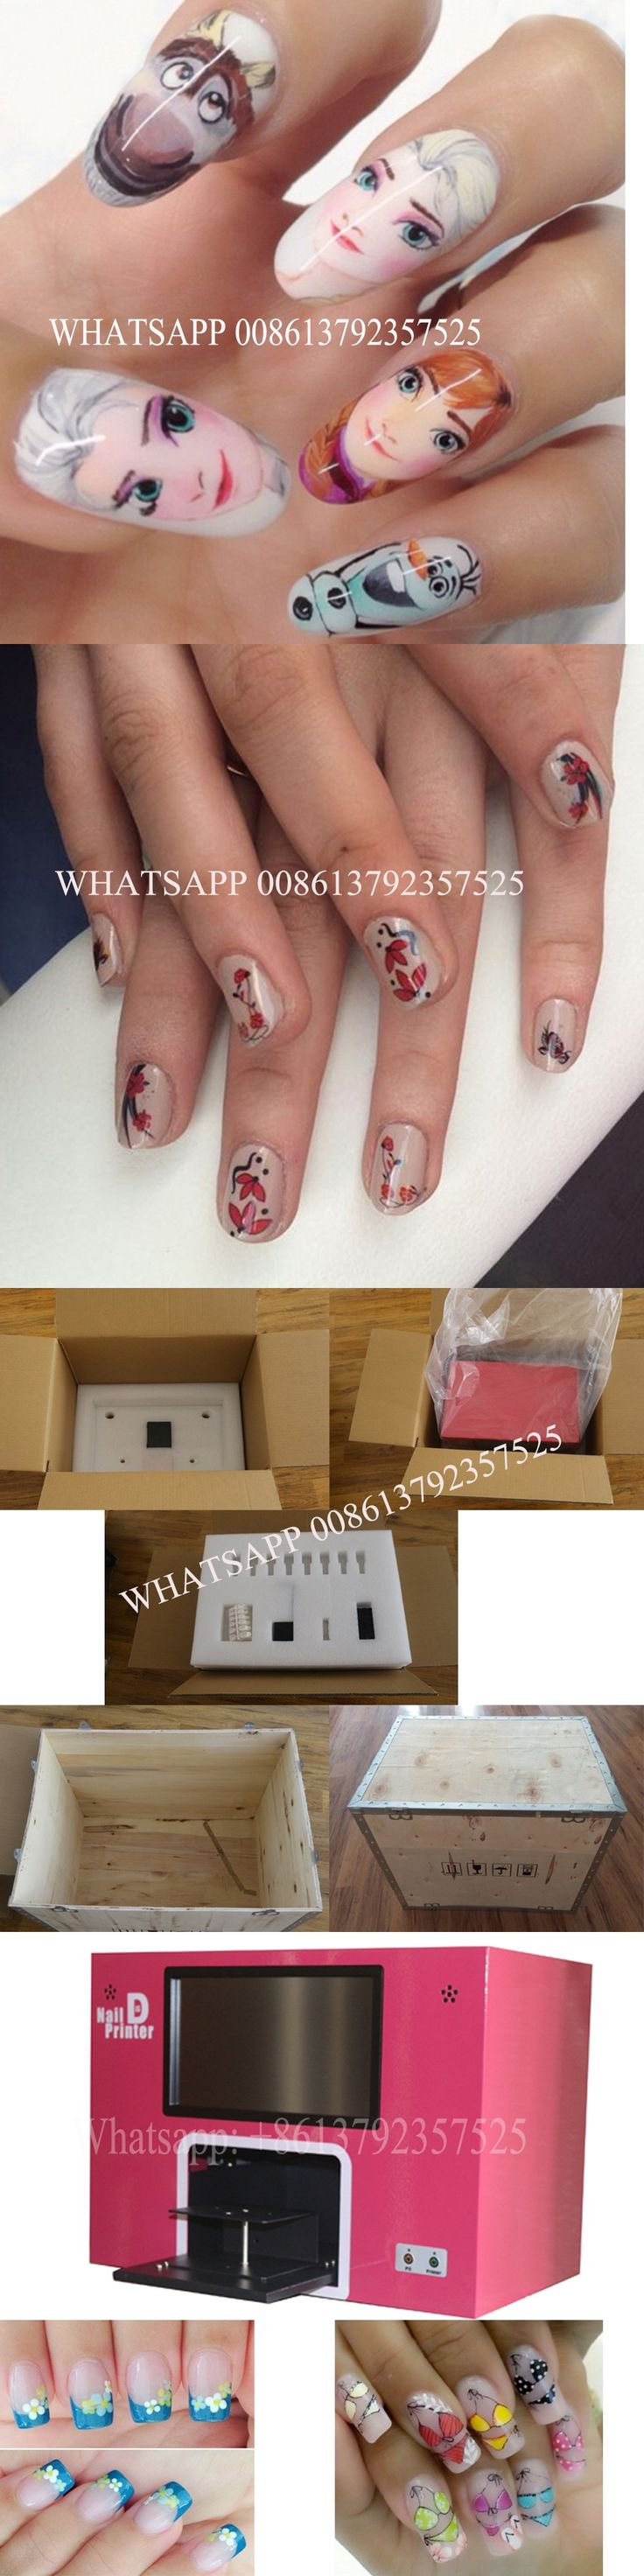 screen nail printer Five nails printer five nails printing a time